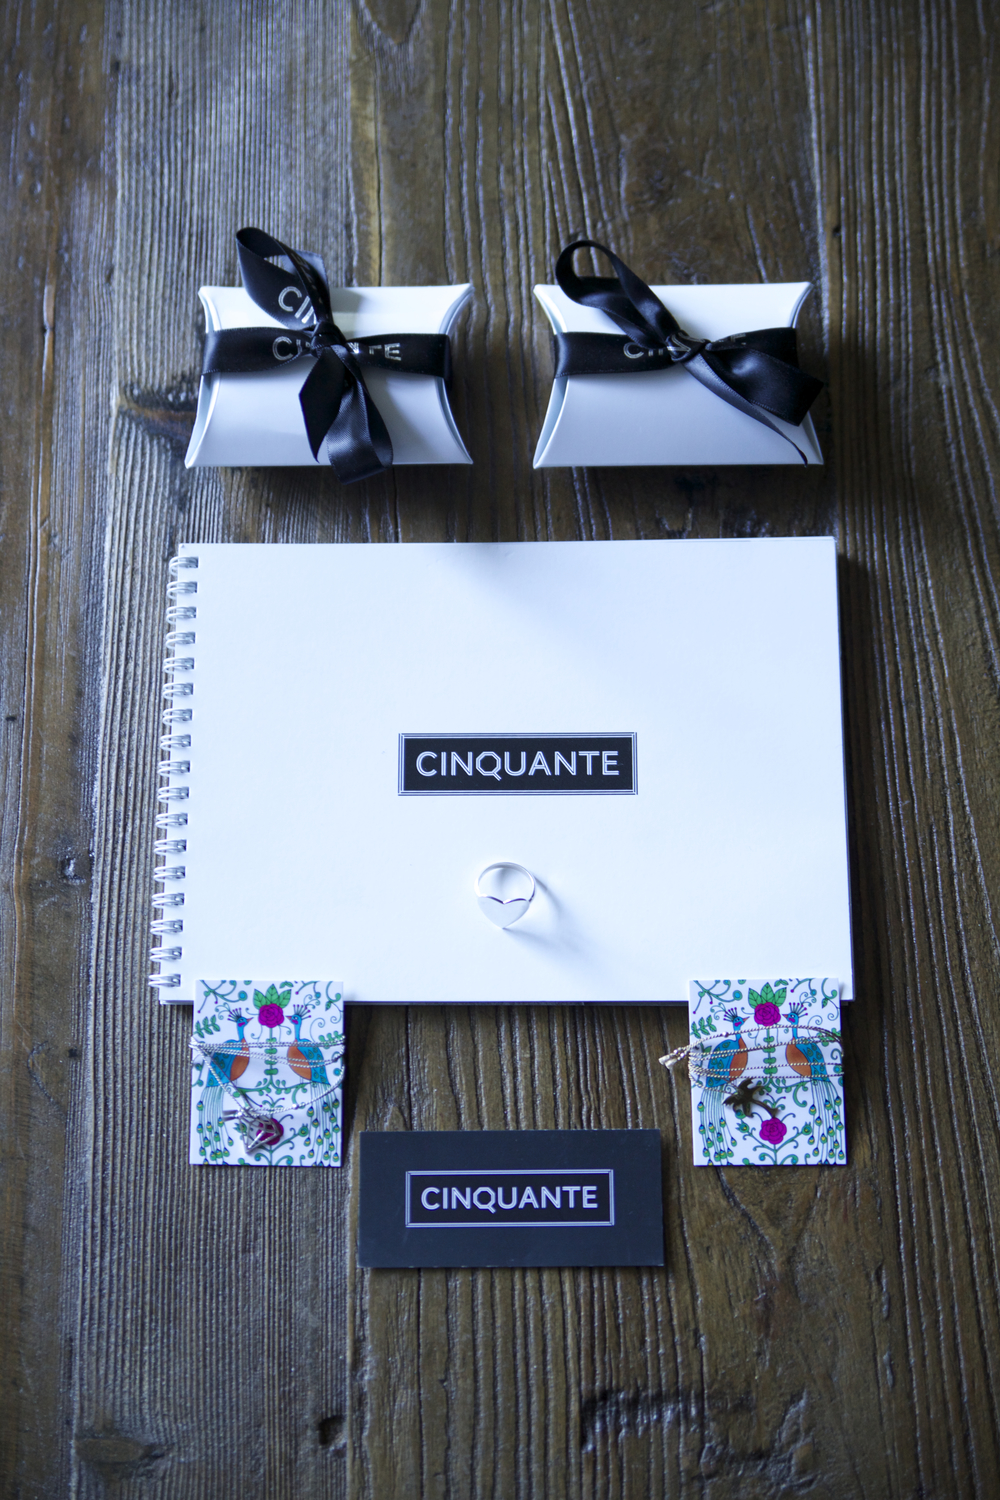 Cinquante Packaging and Branding